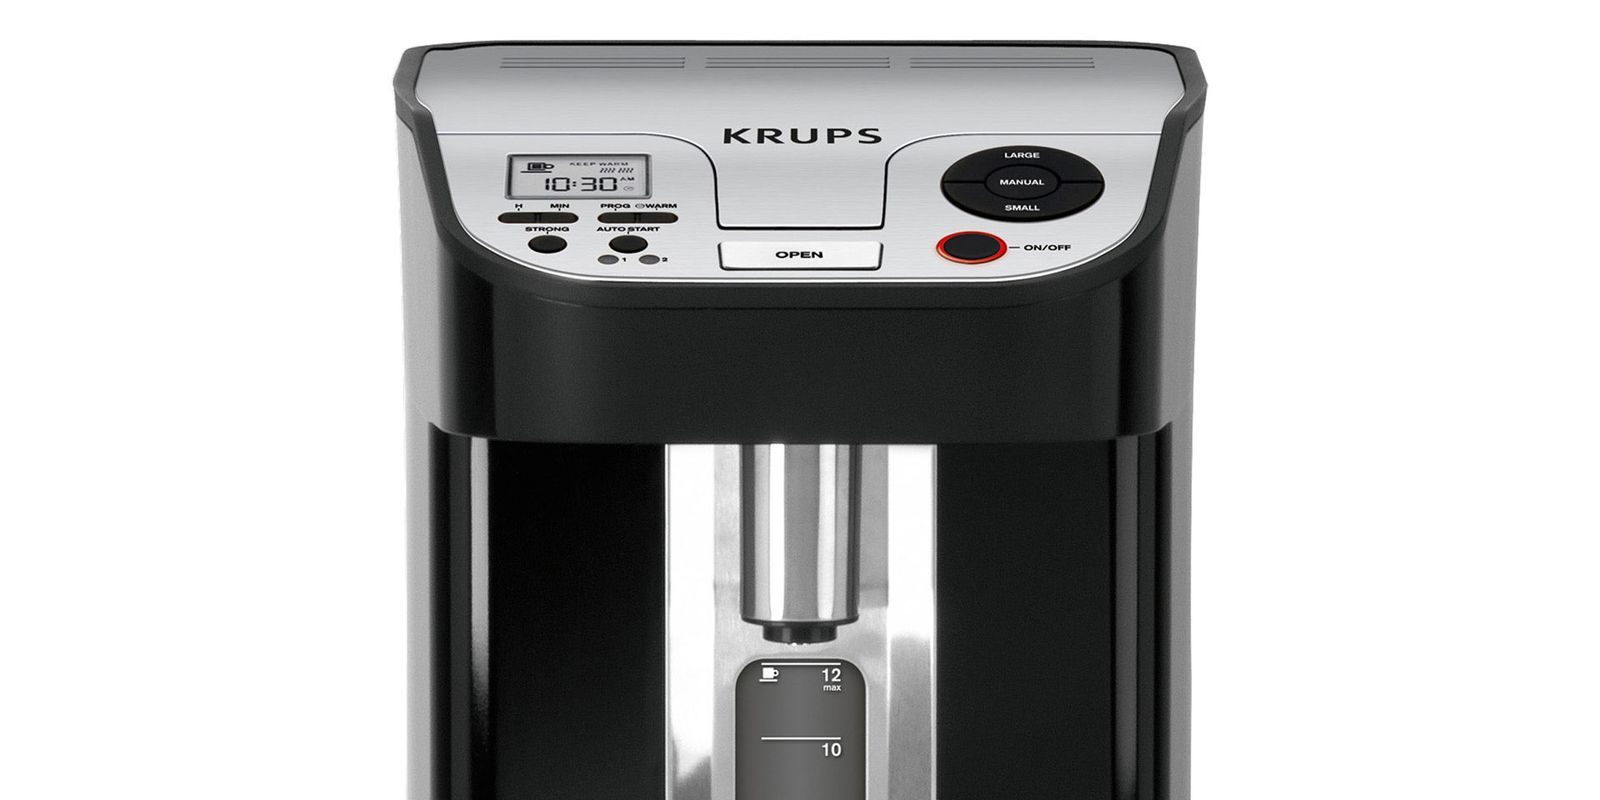 Good Housekeeping Coffee Maker Ratings : Krups Cup-On-Request #KM9008 Review